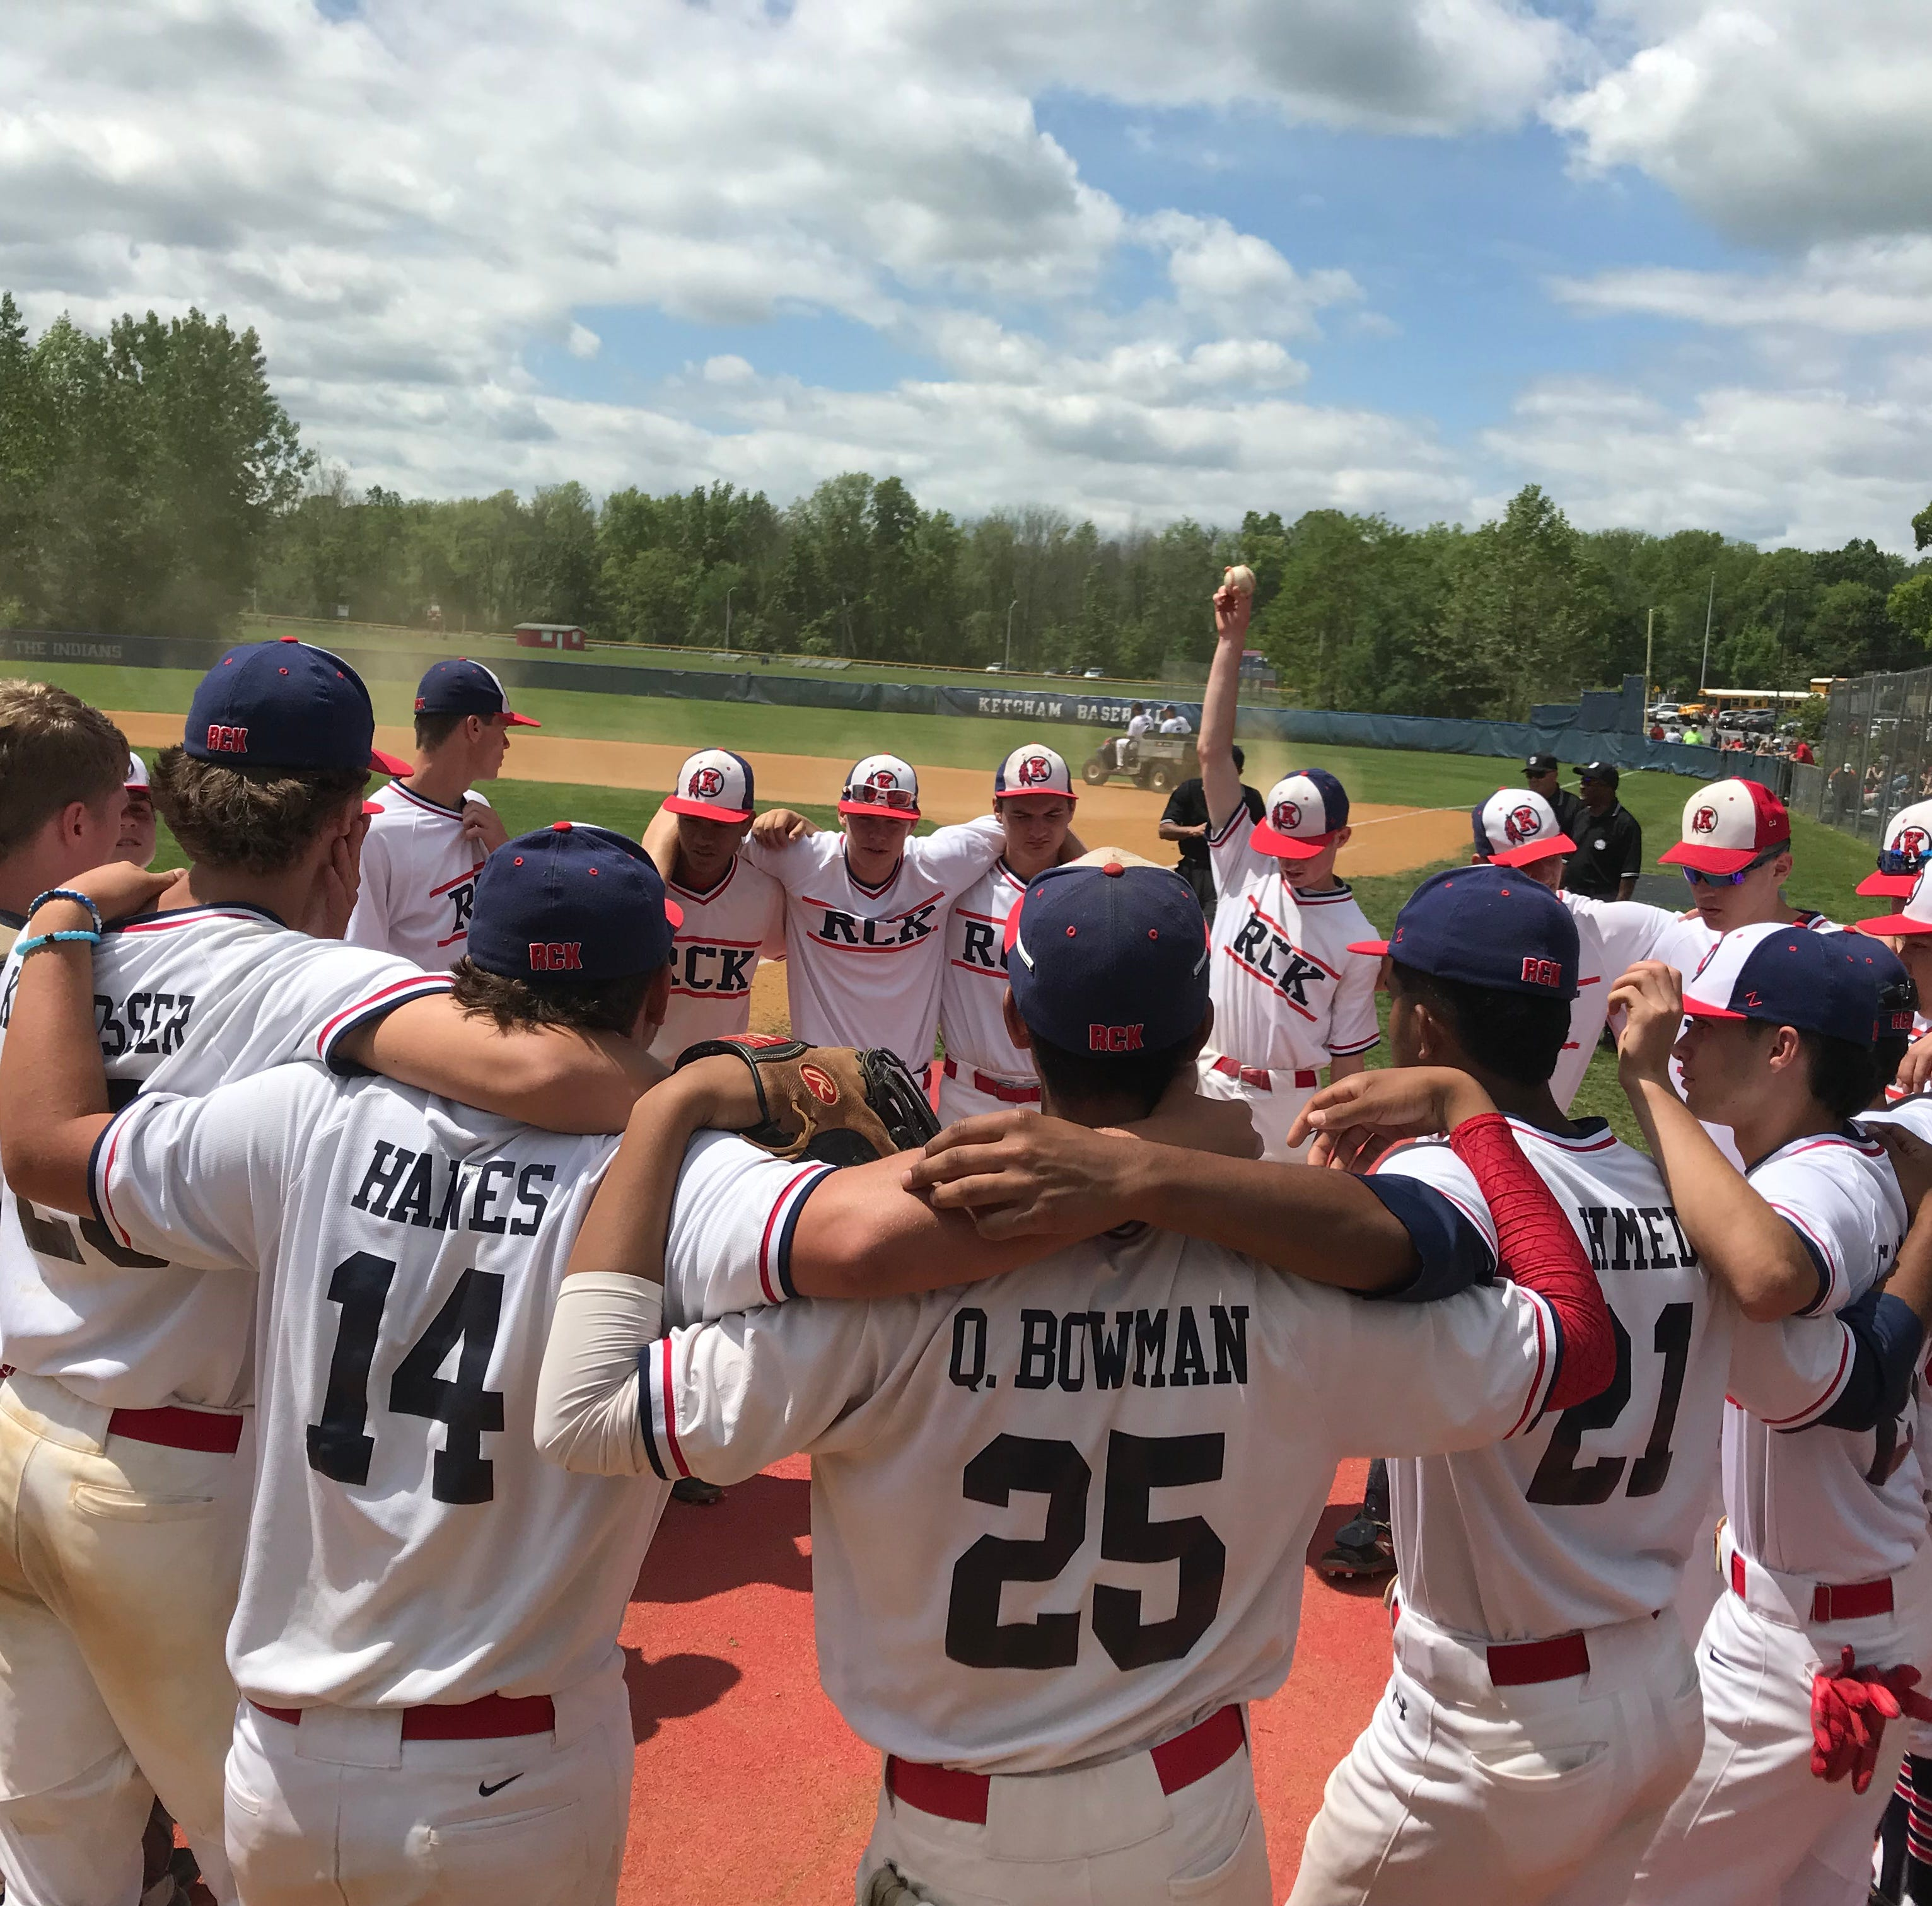 Baseball: Ketcham's Bowman delivers the goods, as Indians beat Mamaroneck in semifinal